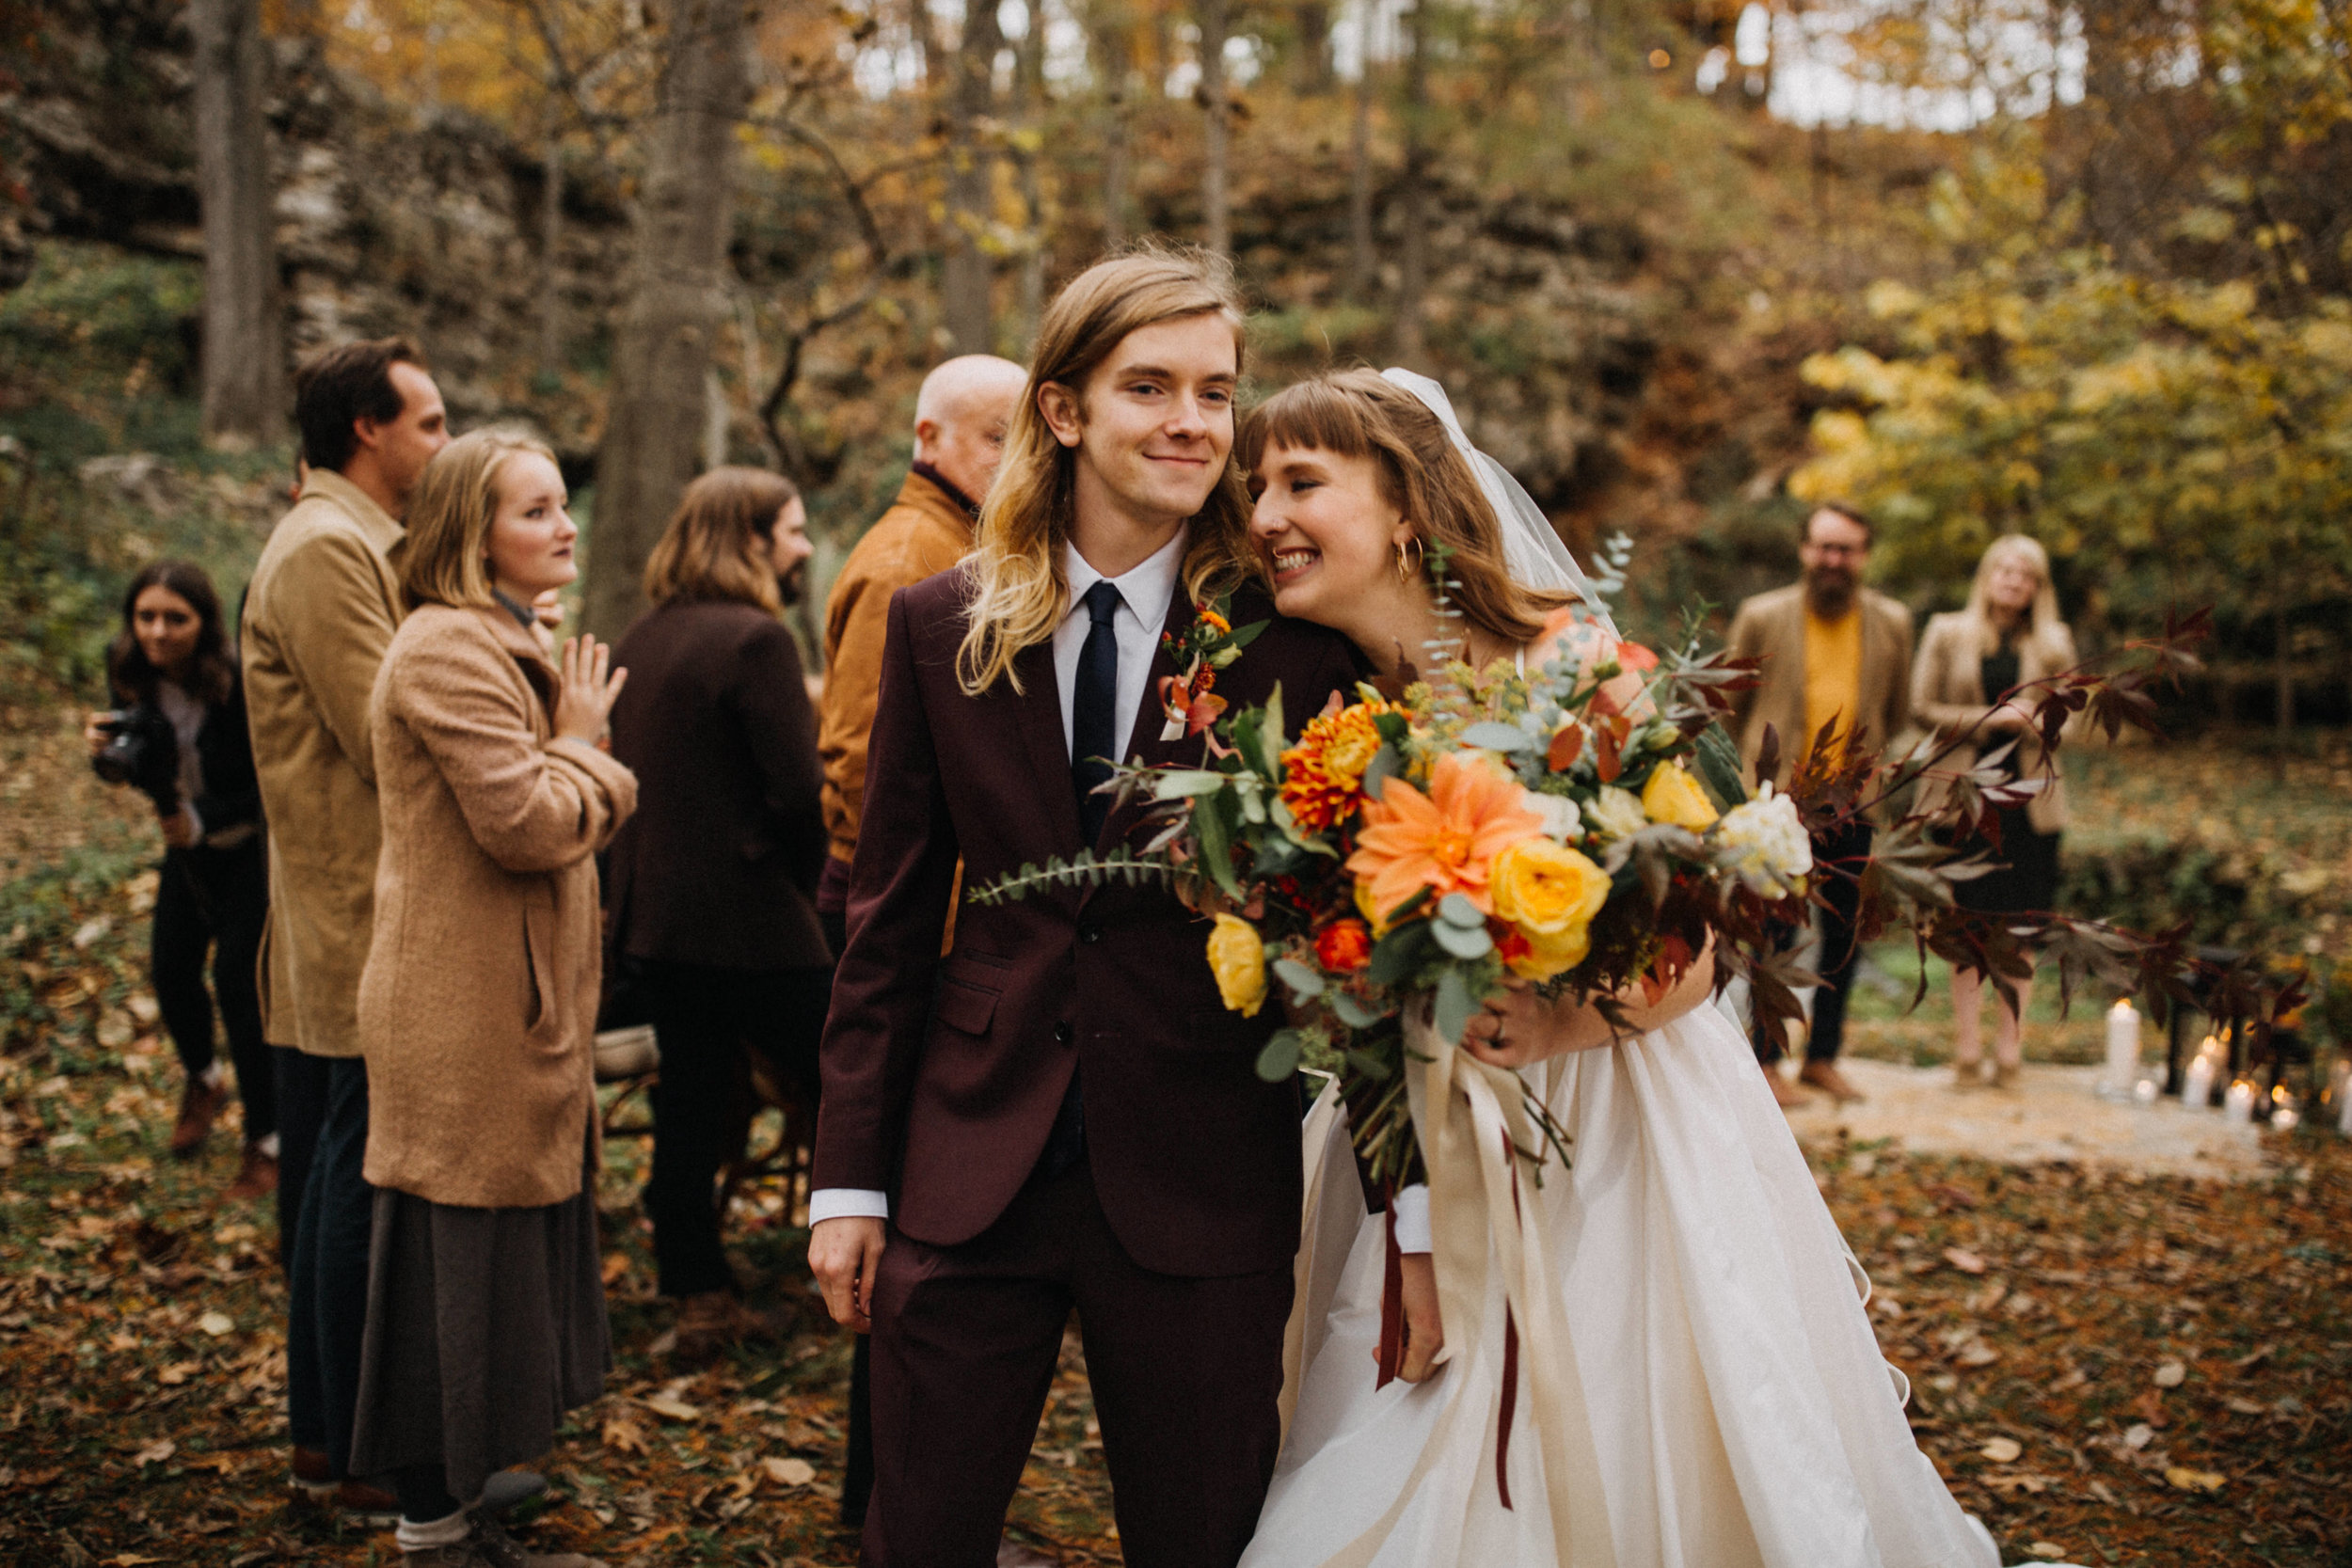 Jessie + Matt an Intimate, Autumn Wedding in the Ozarks | Inner Images Photography